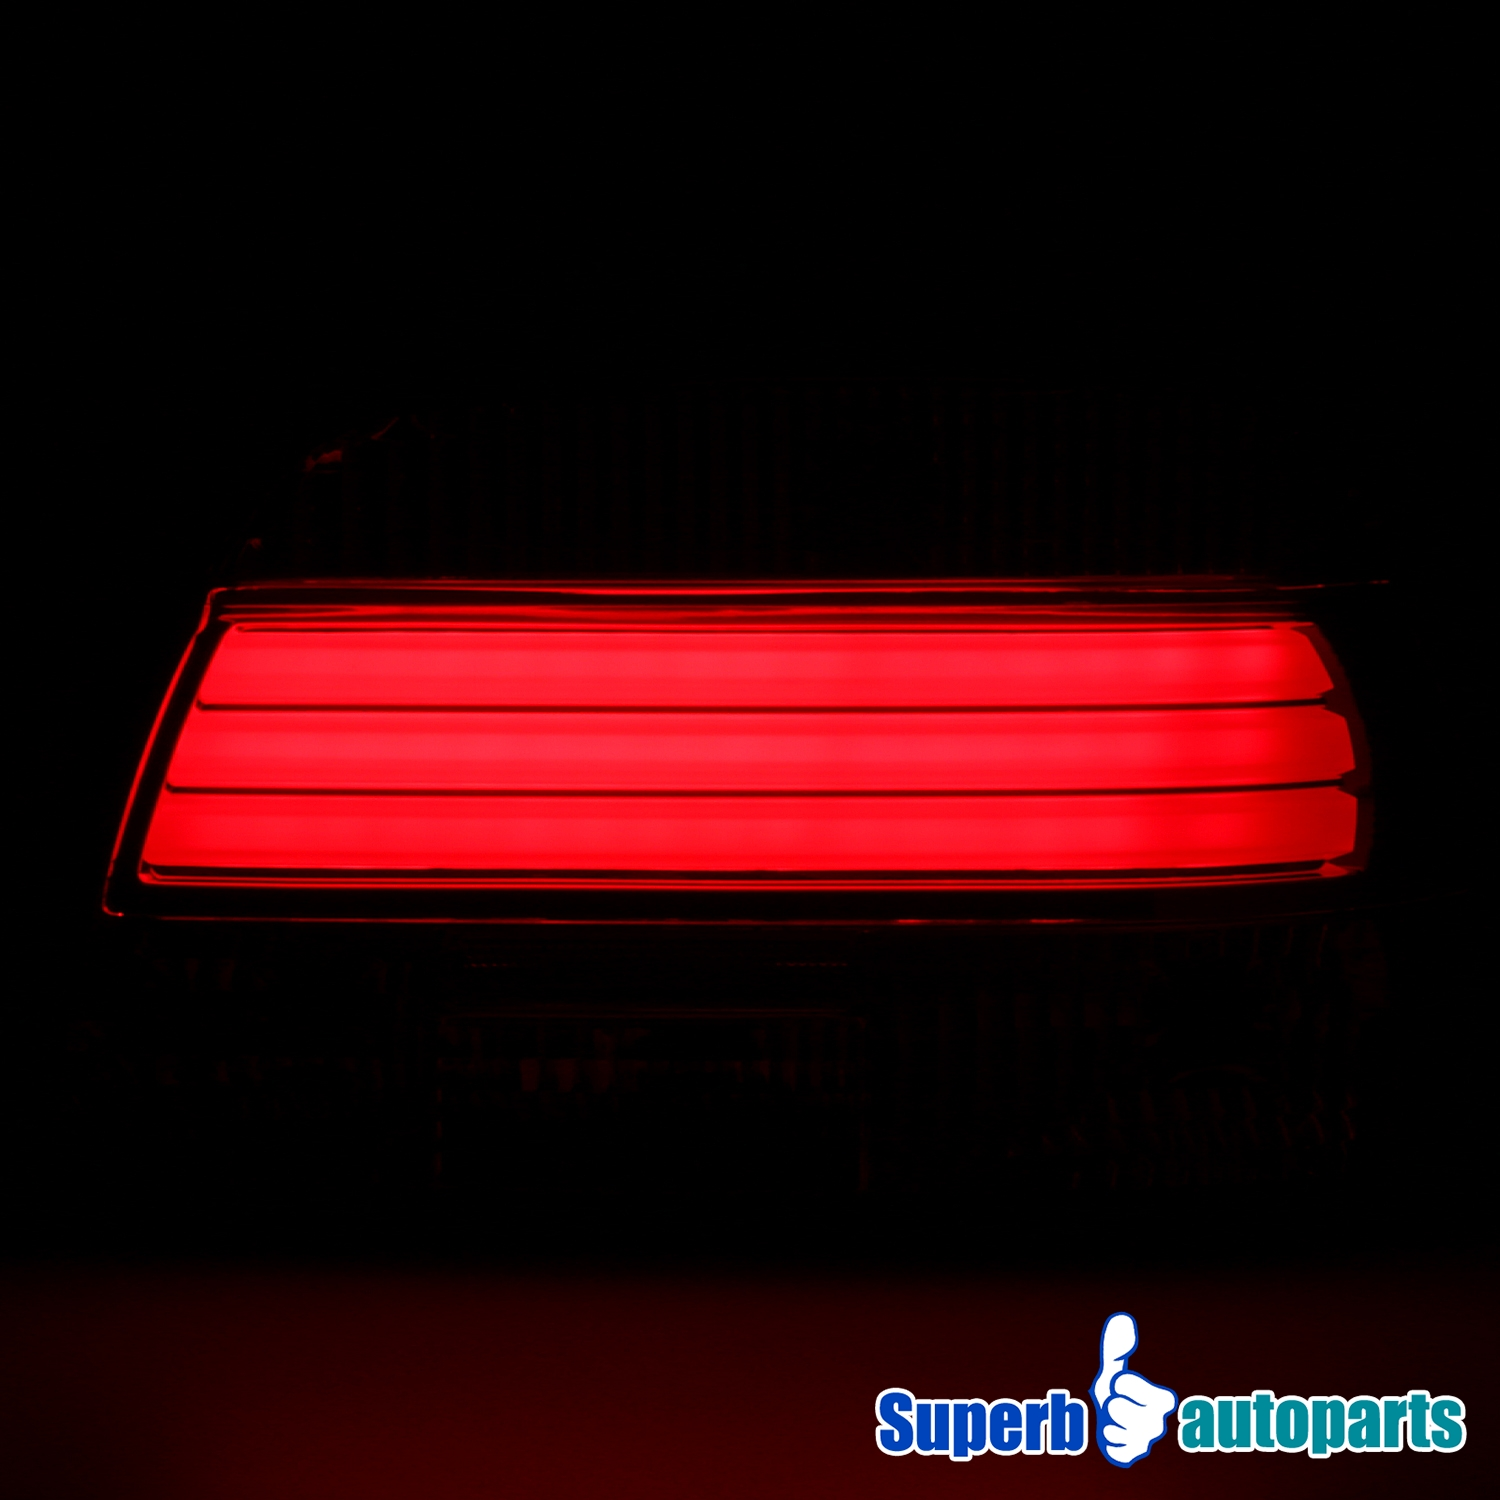 97 00 bmw e39 5 series 528i 540i led strip bar tail light rear 97 00 bmw e39 5 series 528i 540i led strip bar tail light rear brake lamps red aloadofball Image collections